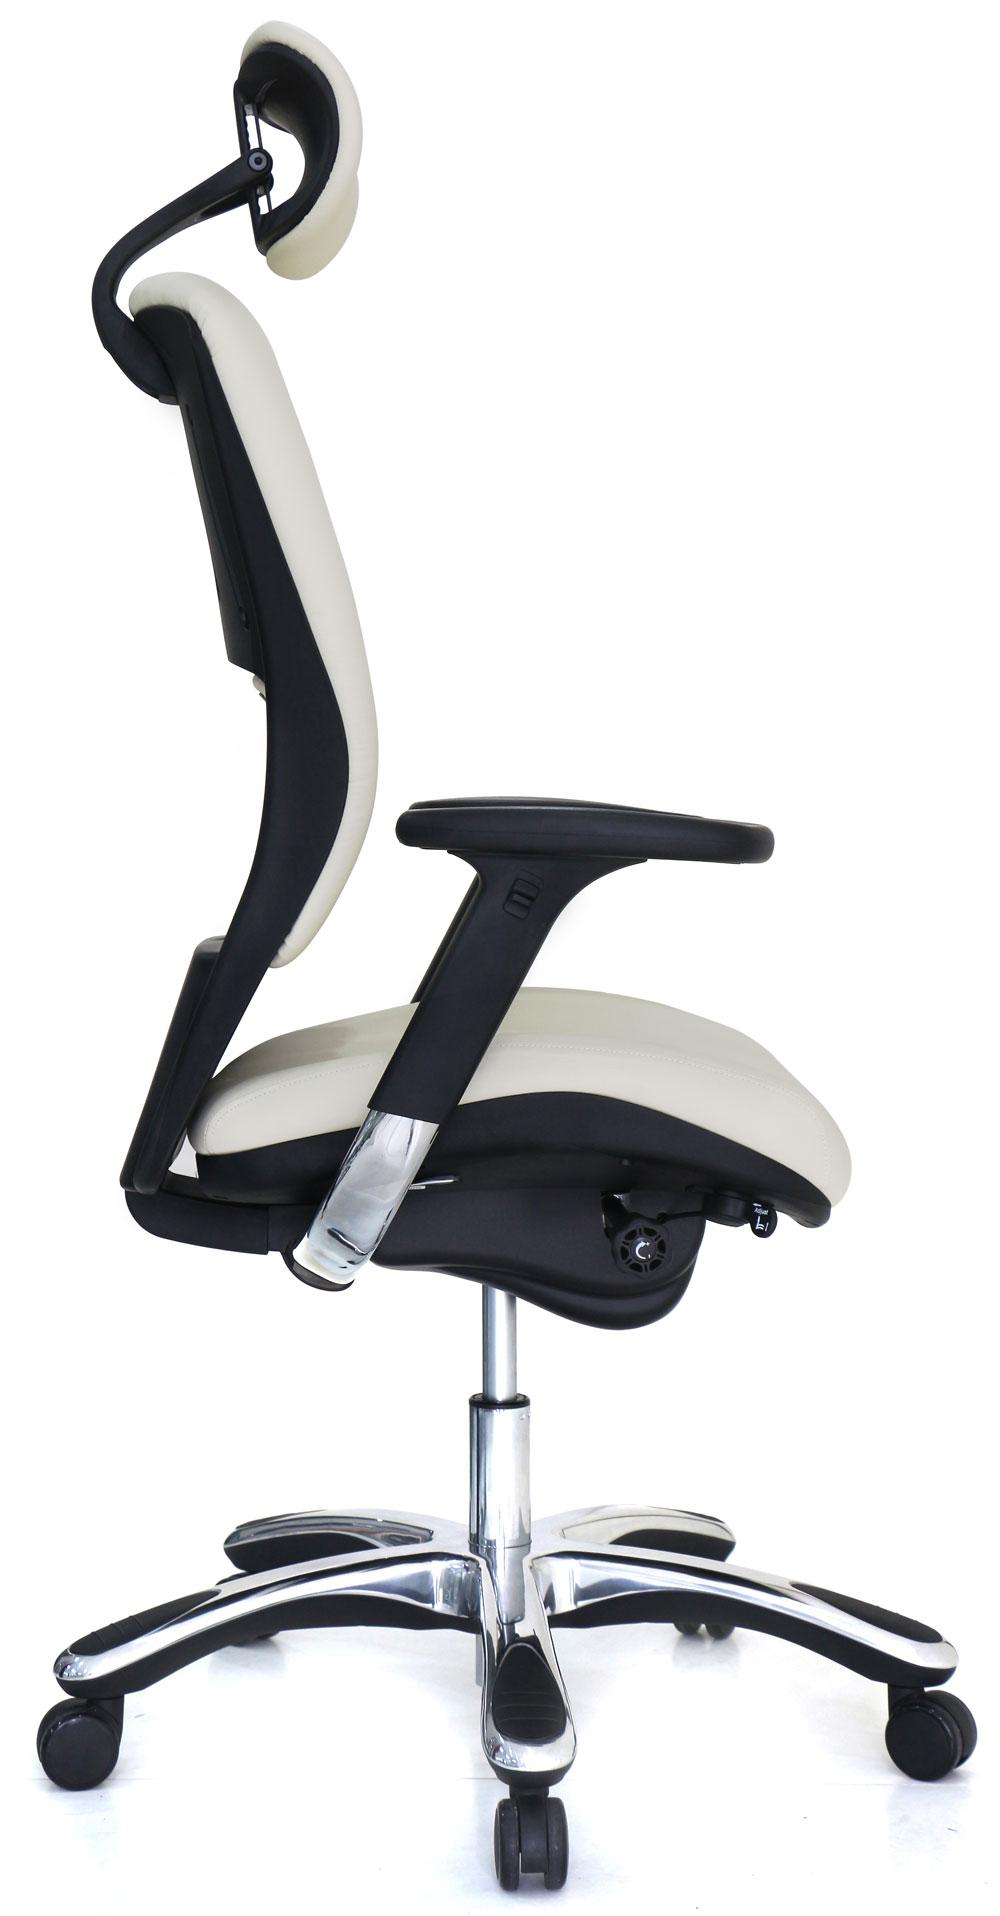 Office chair back view - Ergolux Genuine Leather High Back Executive Office Chair View Larger